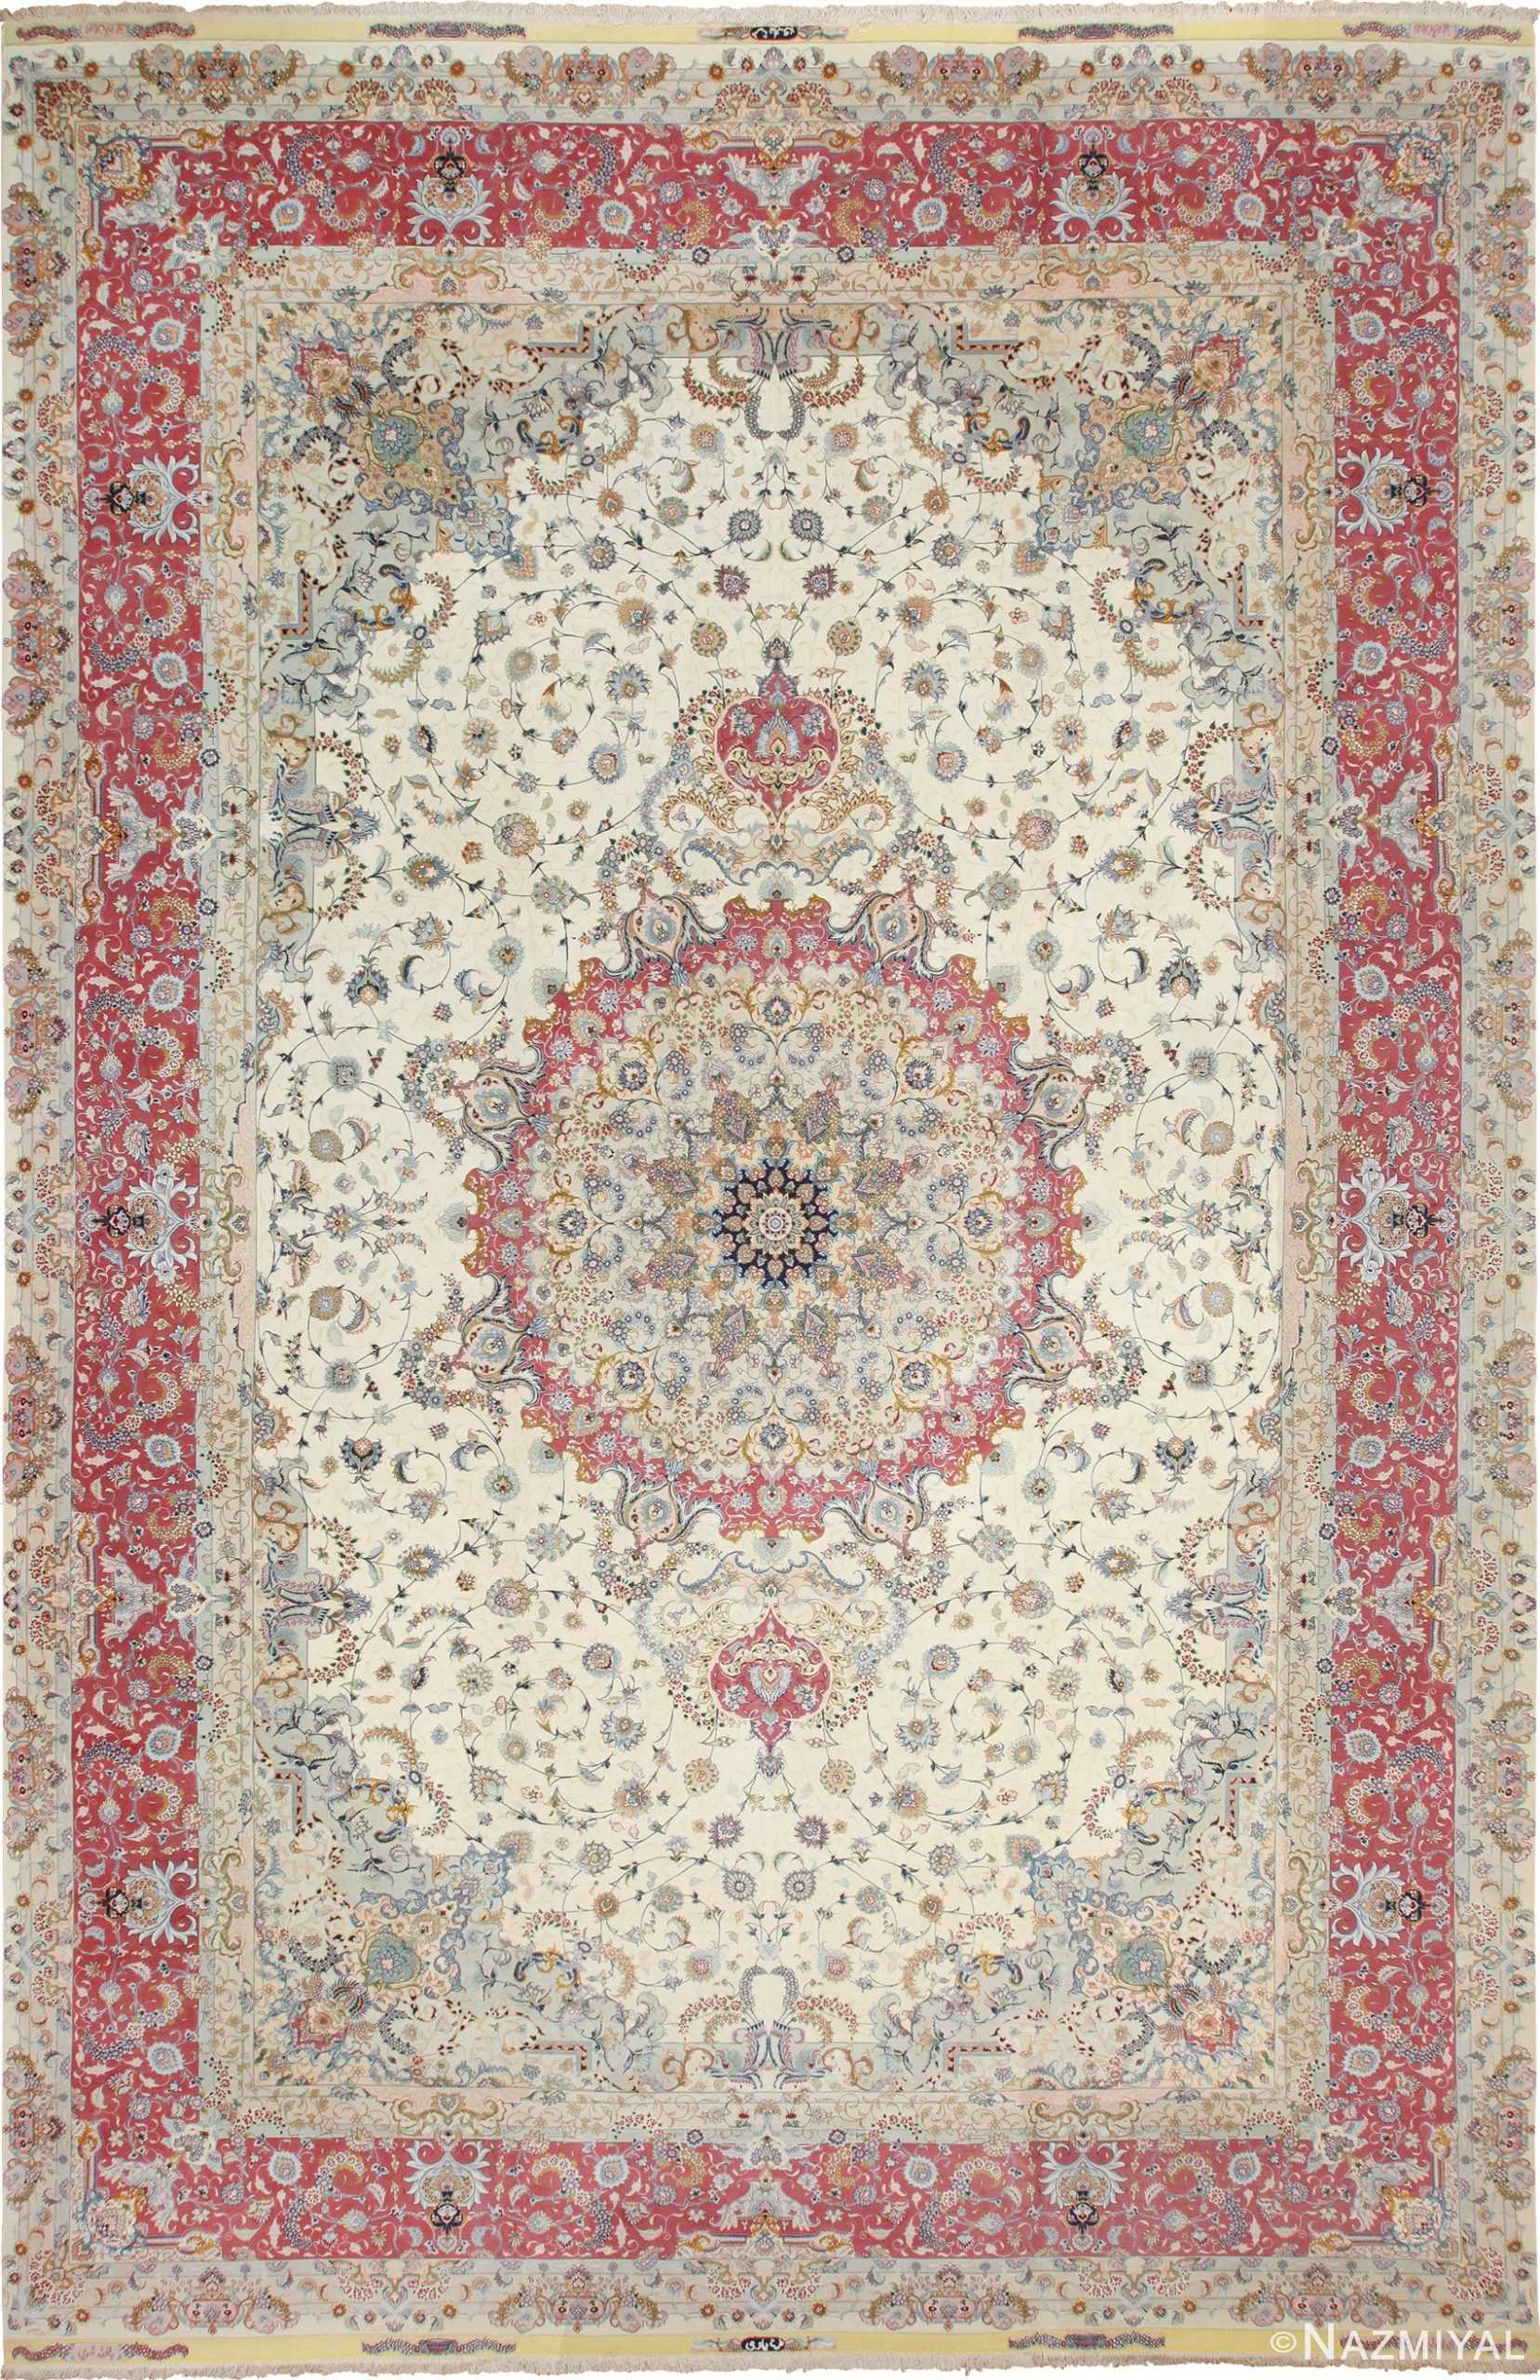 Large Oversized Vintage Wool and Silk Persian Tabriz Rug 60024 by Nazmiyal